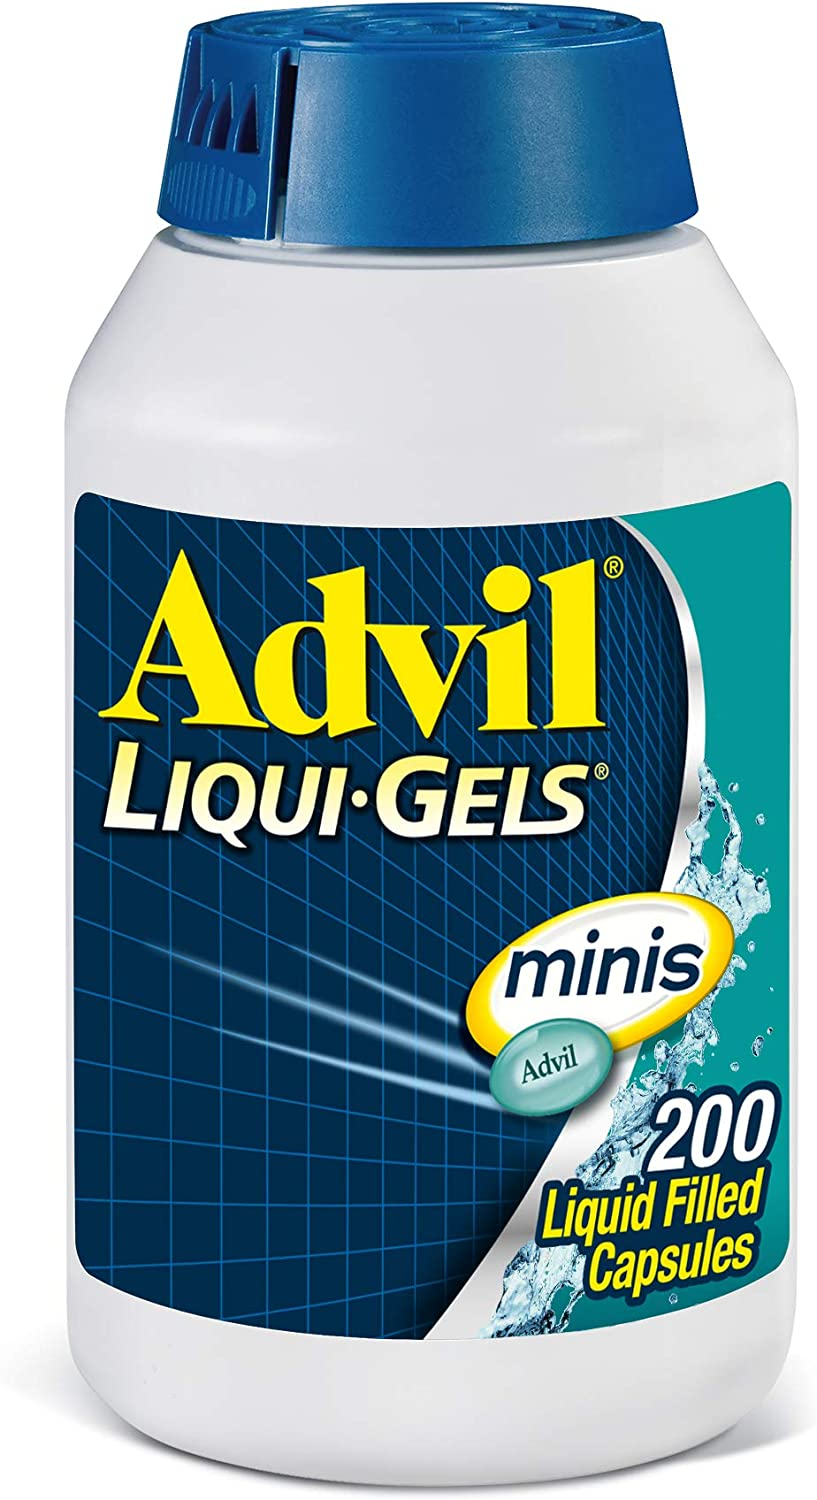 Advil Liqui-Gels Minis latest Pain Reliever Reducer Fever Ibuprofe Popular products and